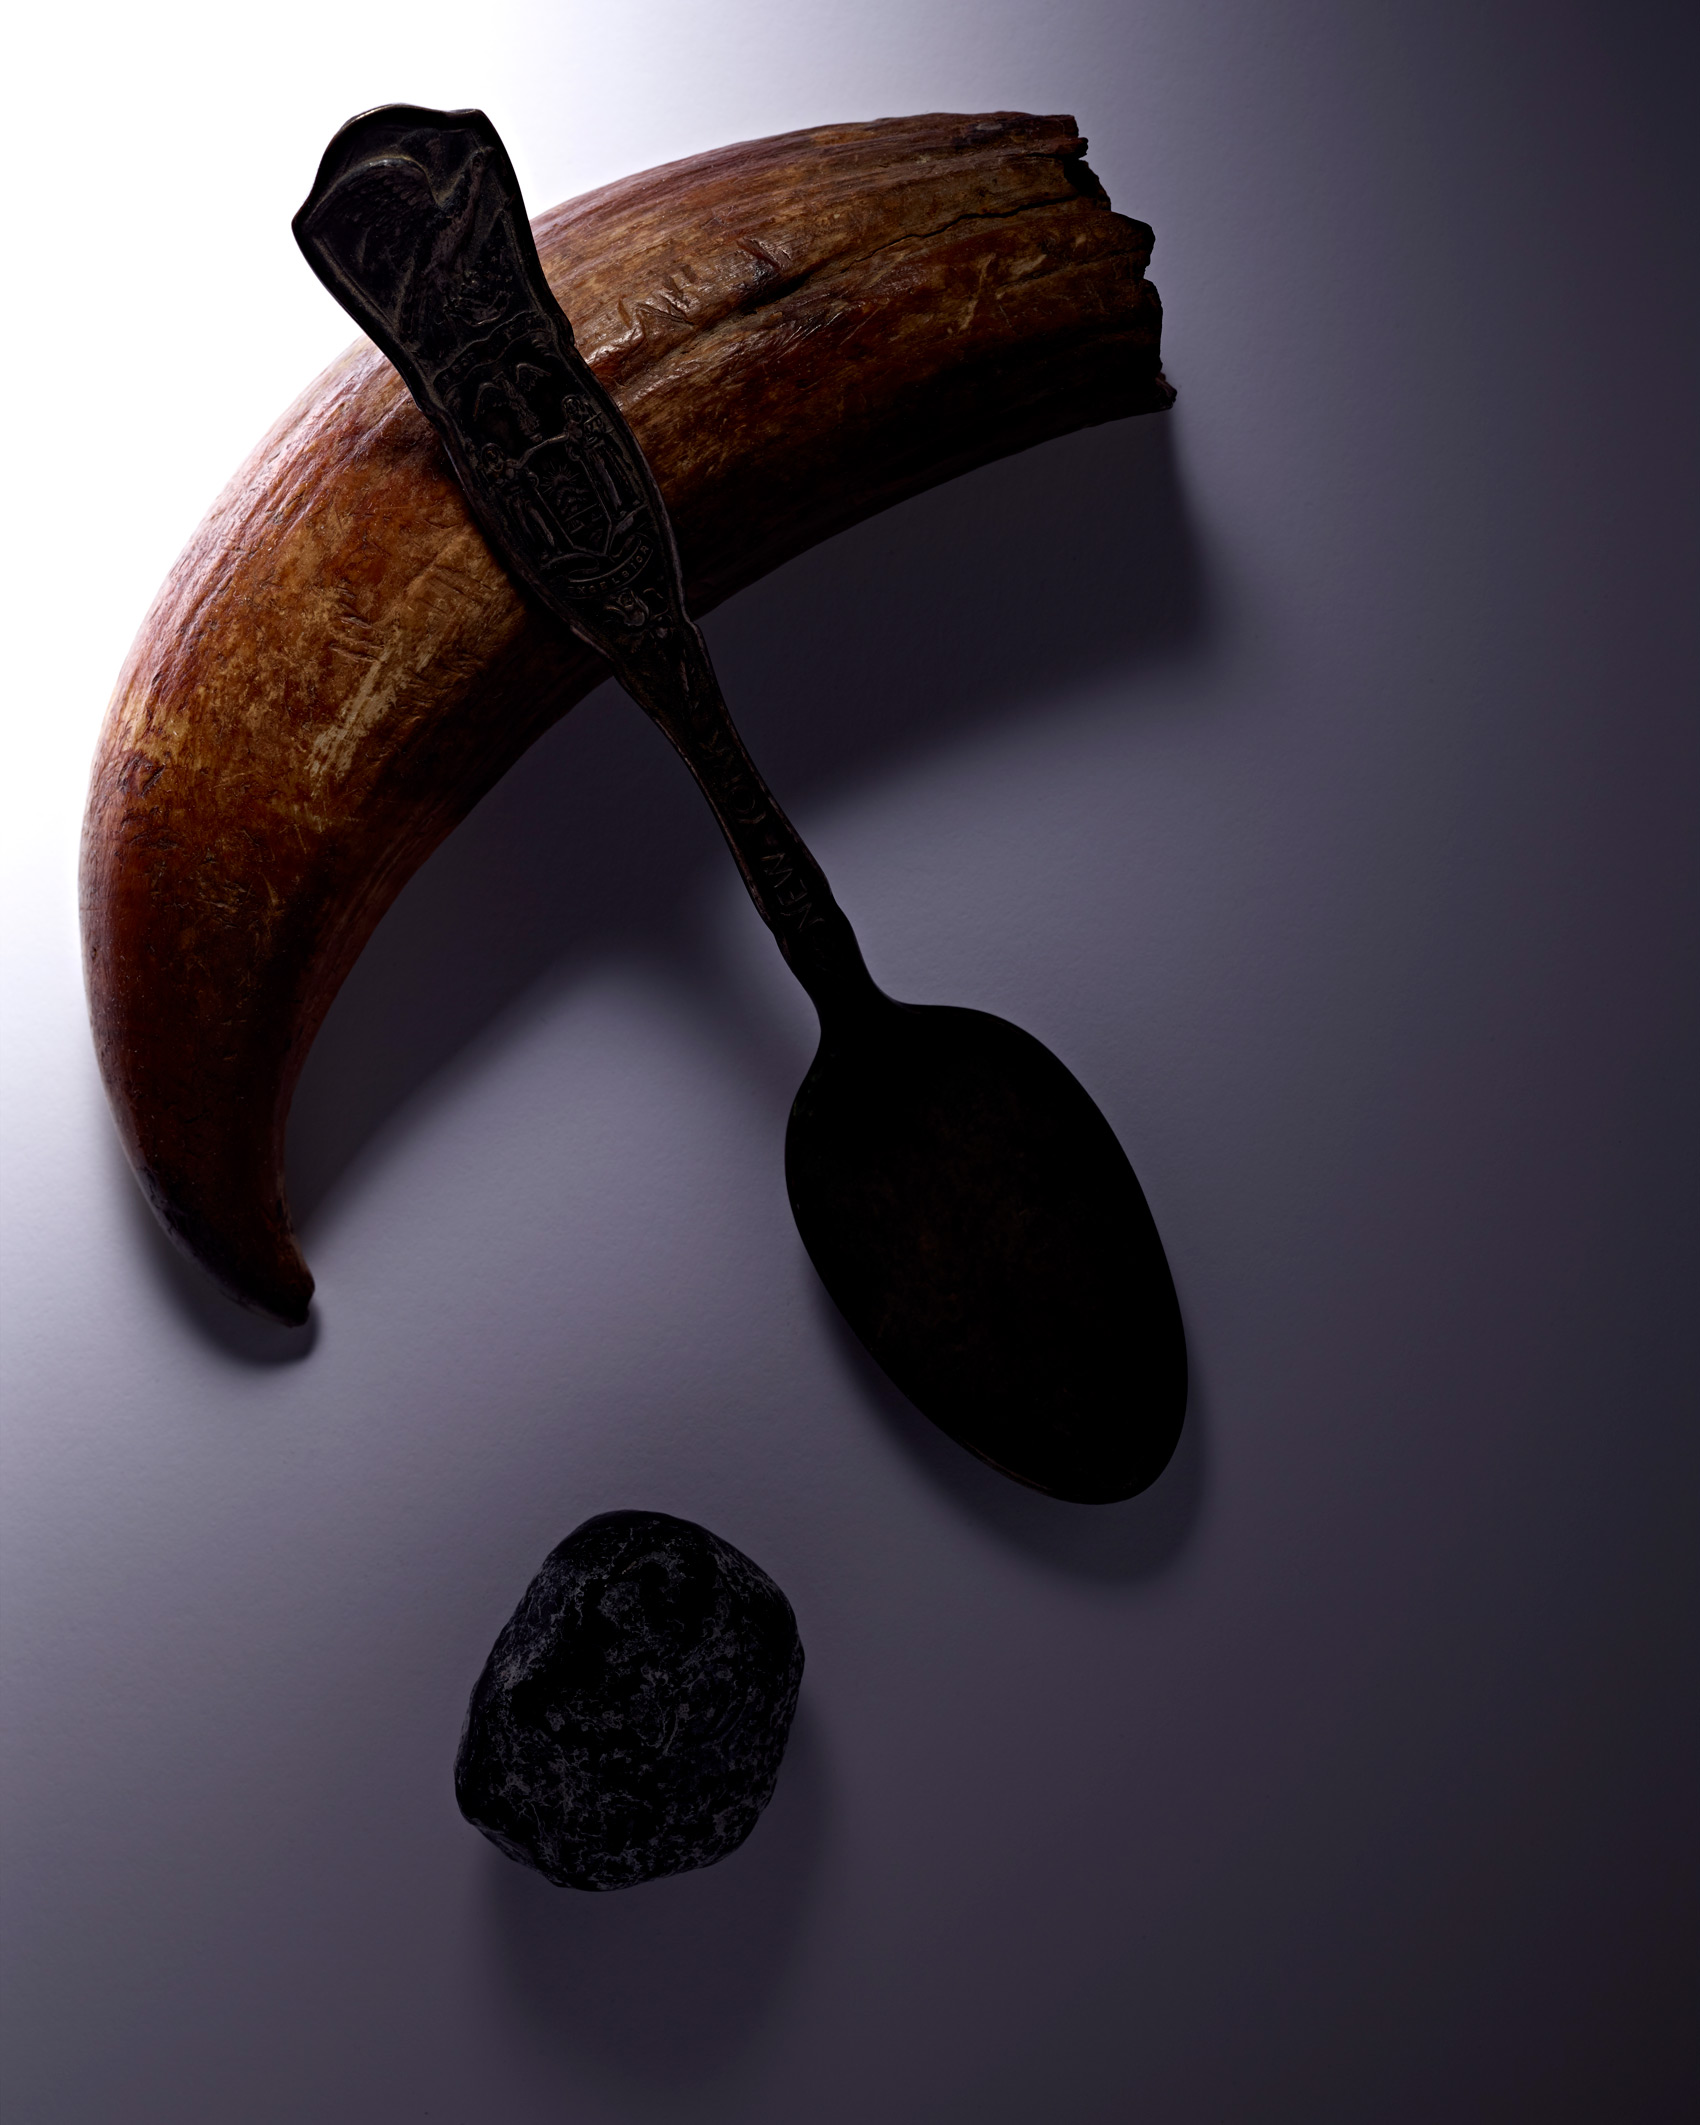 Still Life of a Spoon